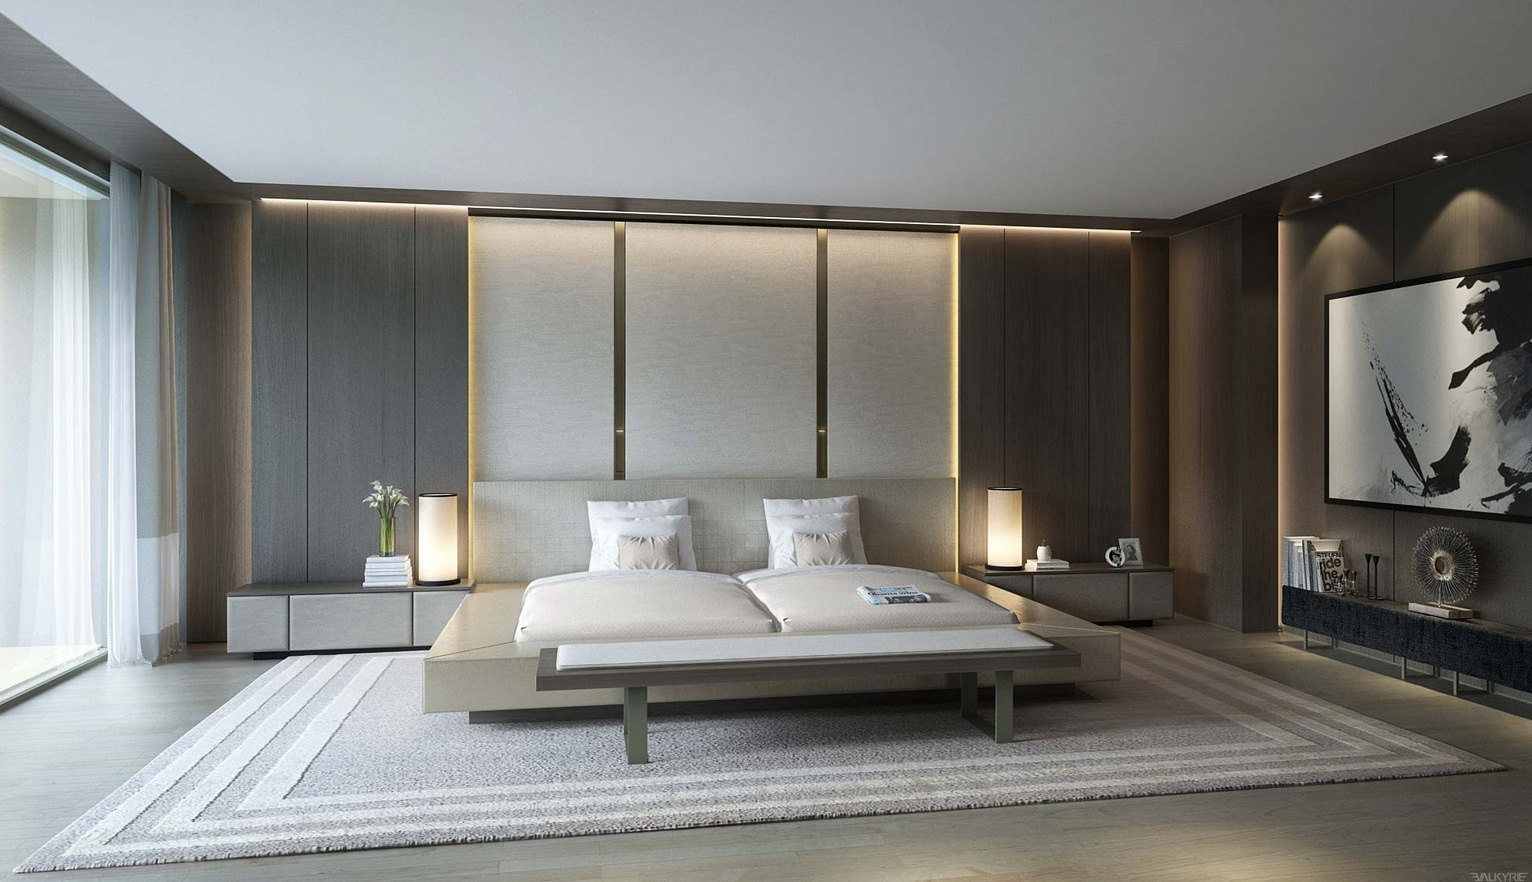 21 cool bedrooms for clean and simple design inspiration Photos of bedroom designs